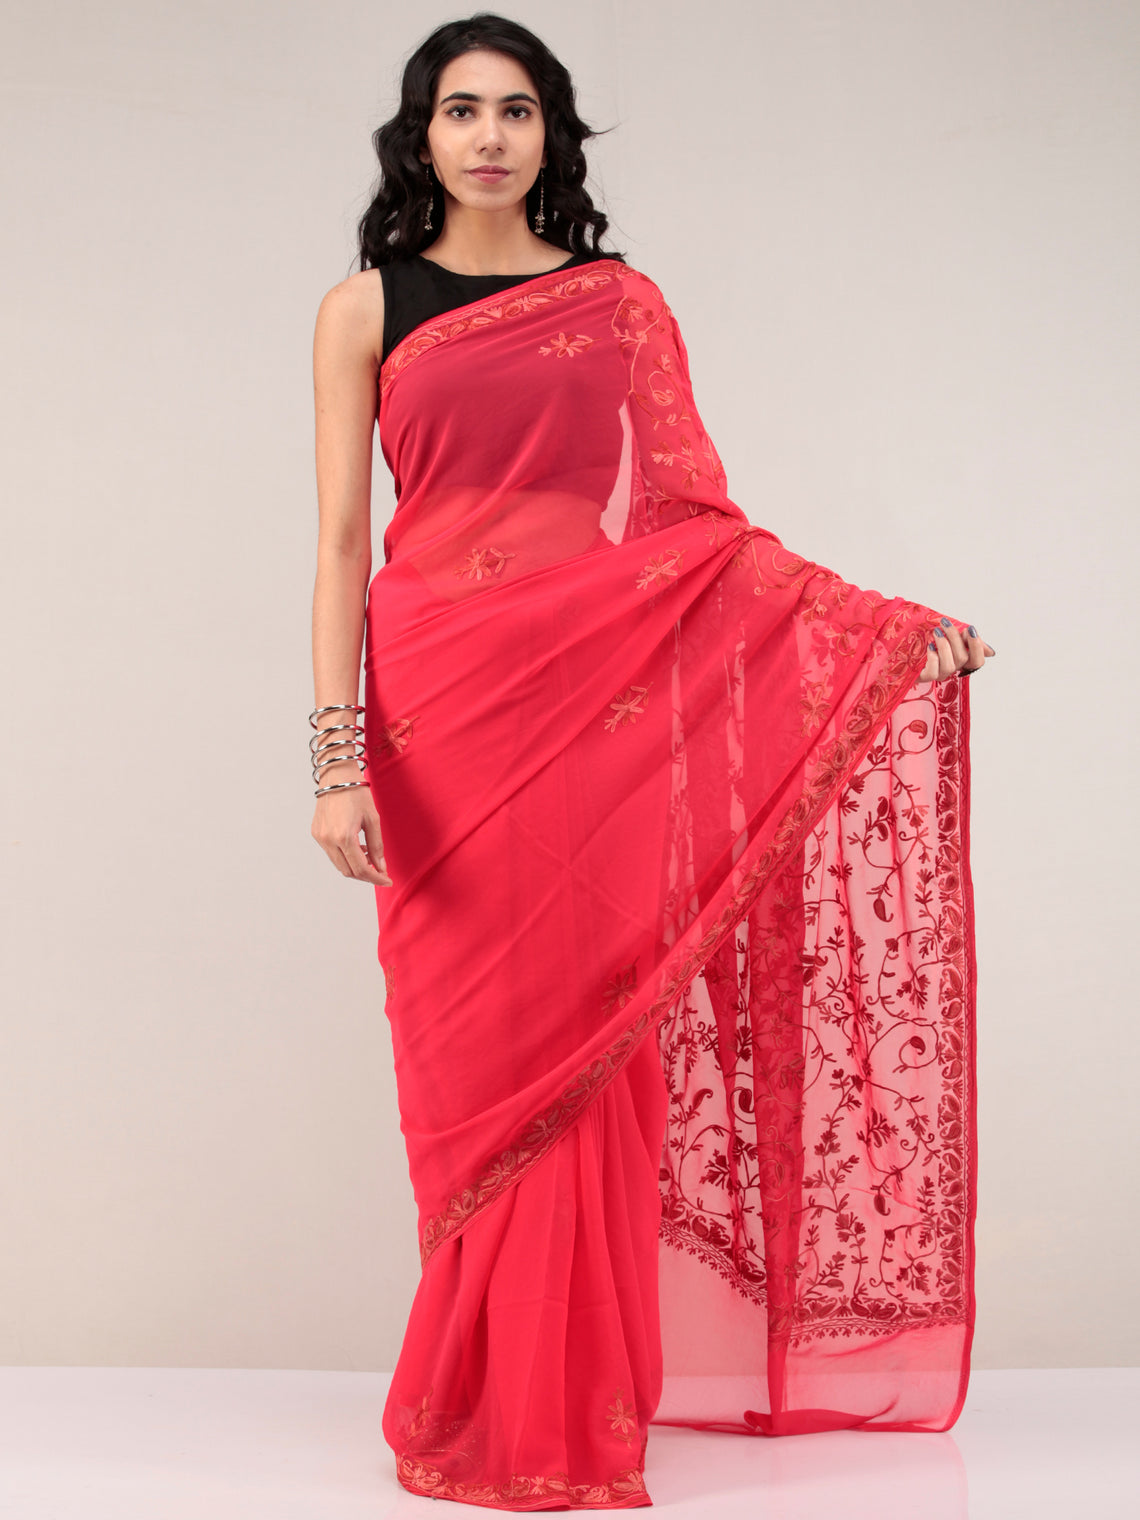 Red Aari Embroidered Georgette Saree From Kashmir - S031704659